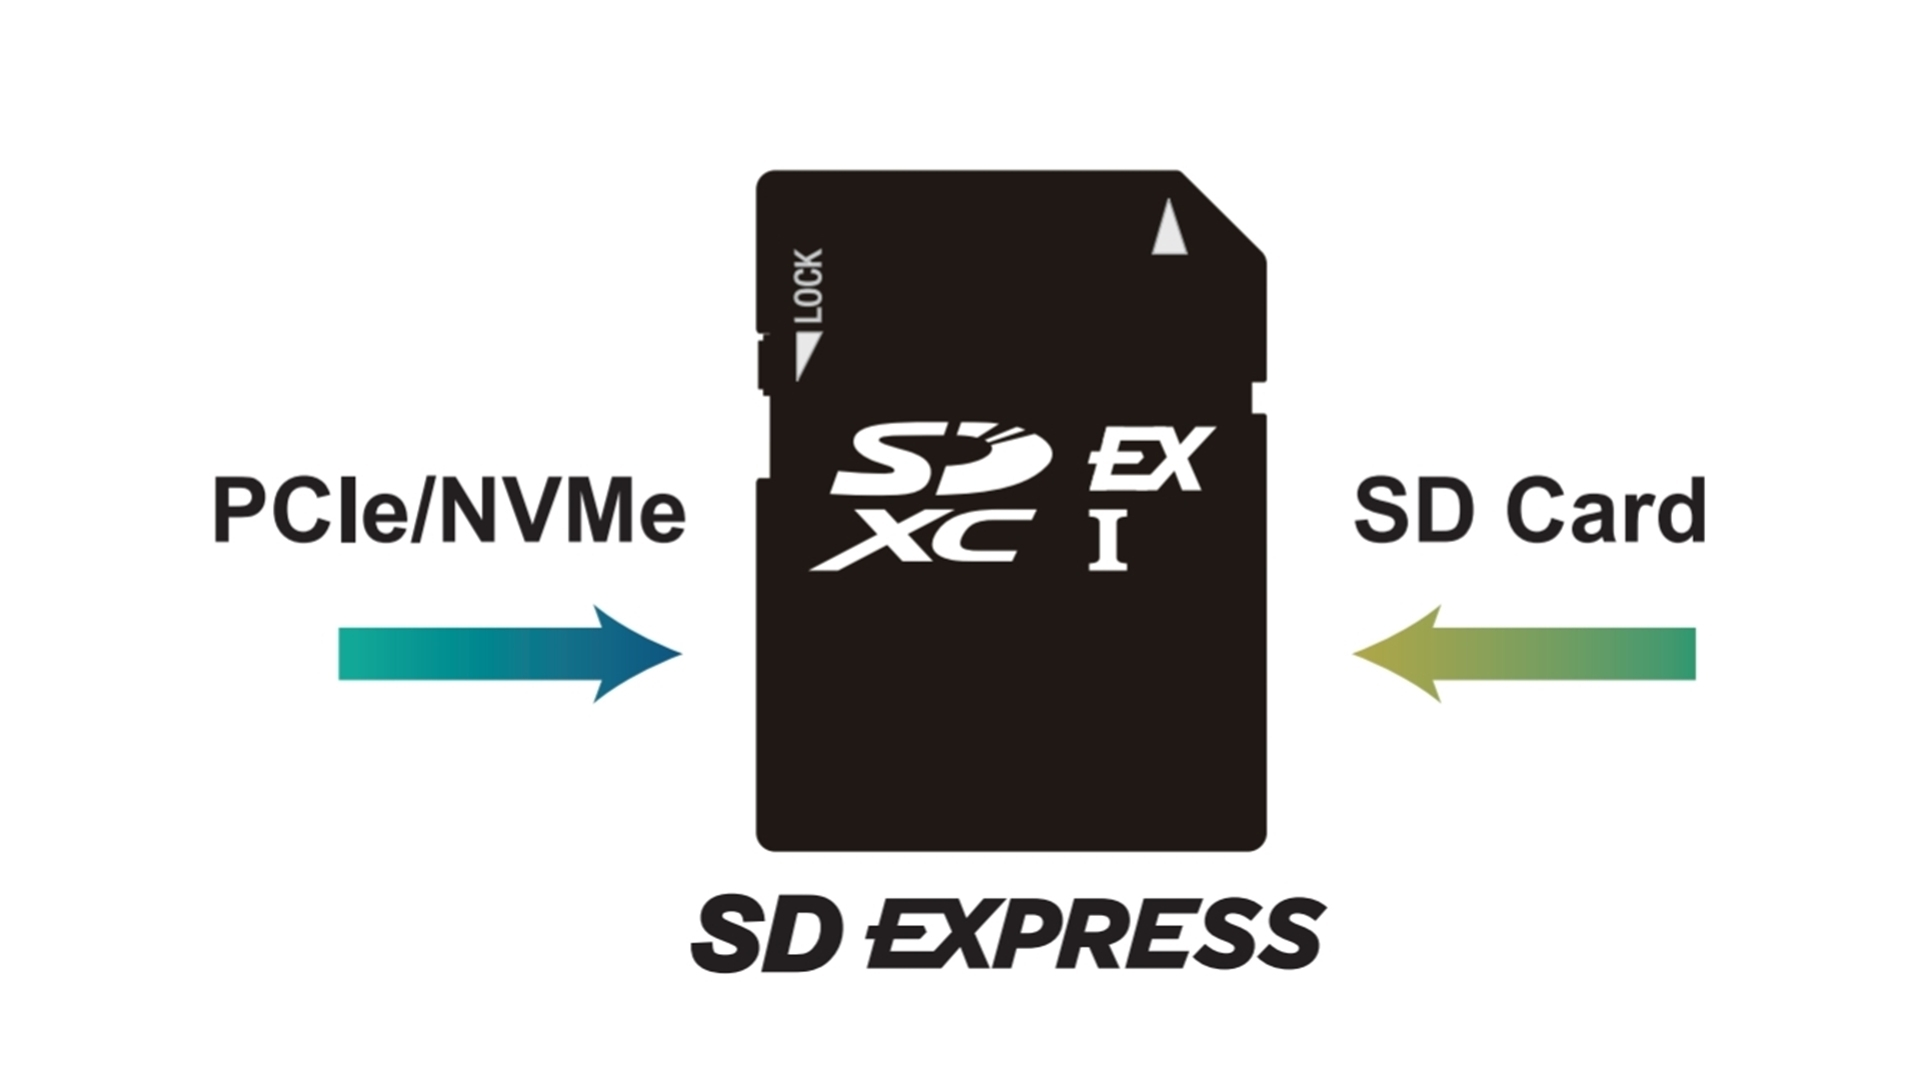 Sd Express Cards Explained